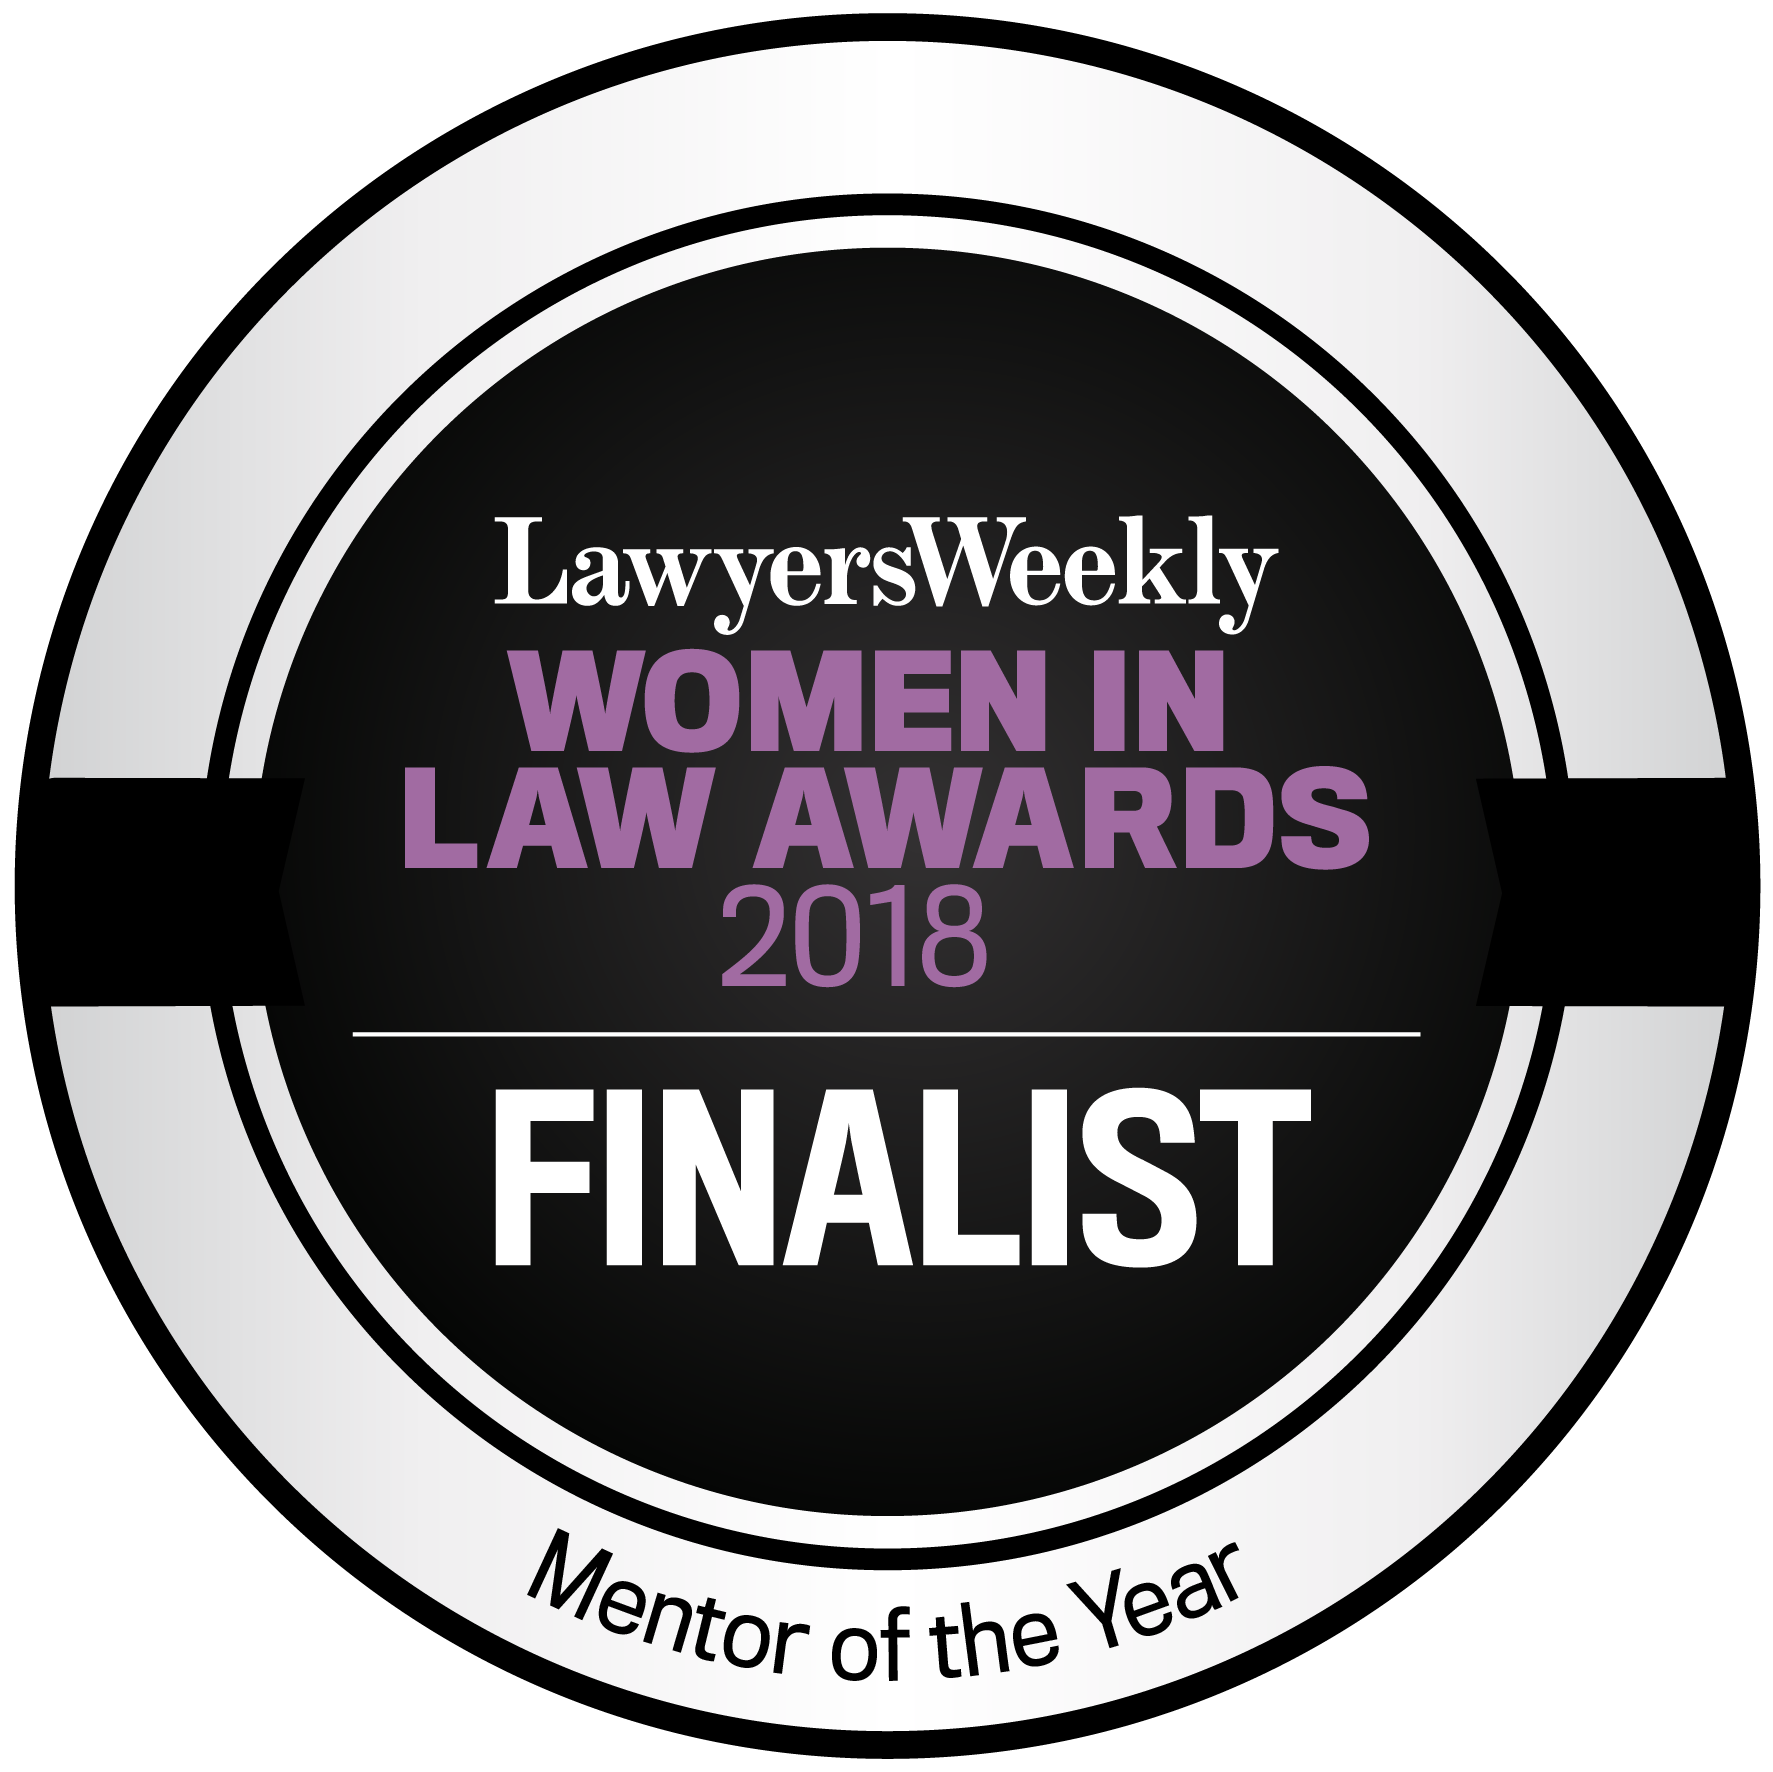 Lawyers Weekly Women in Law Awards 2018 - Mentor of the Year